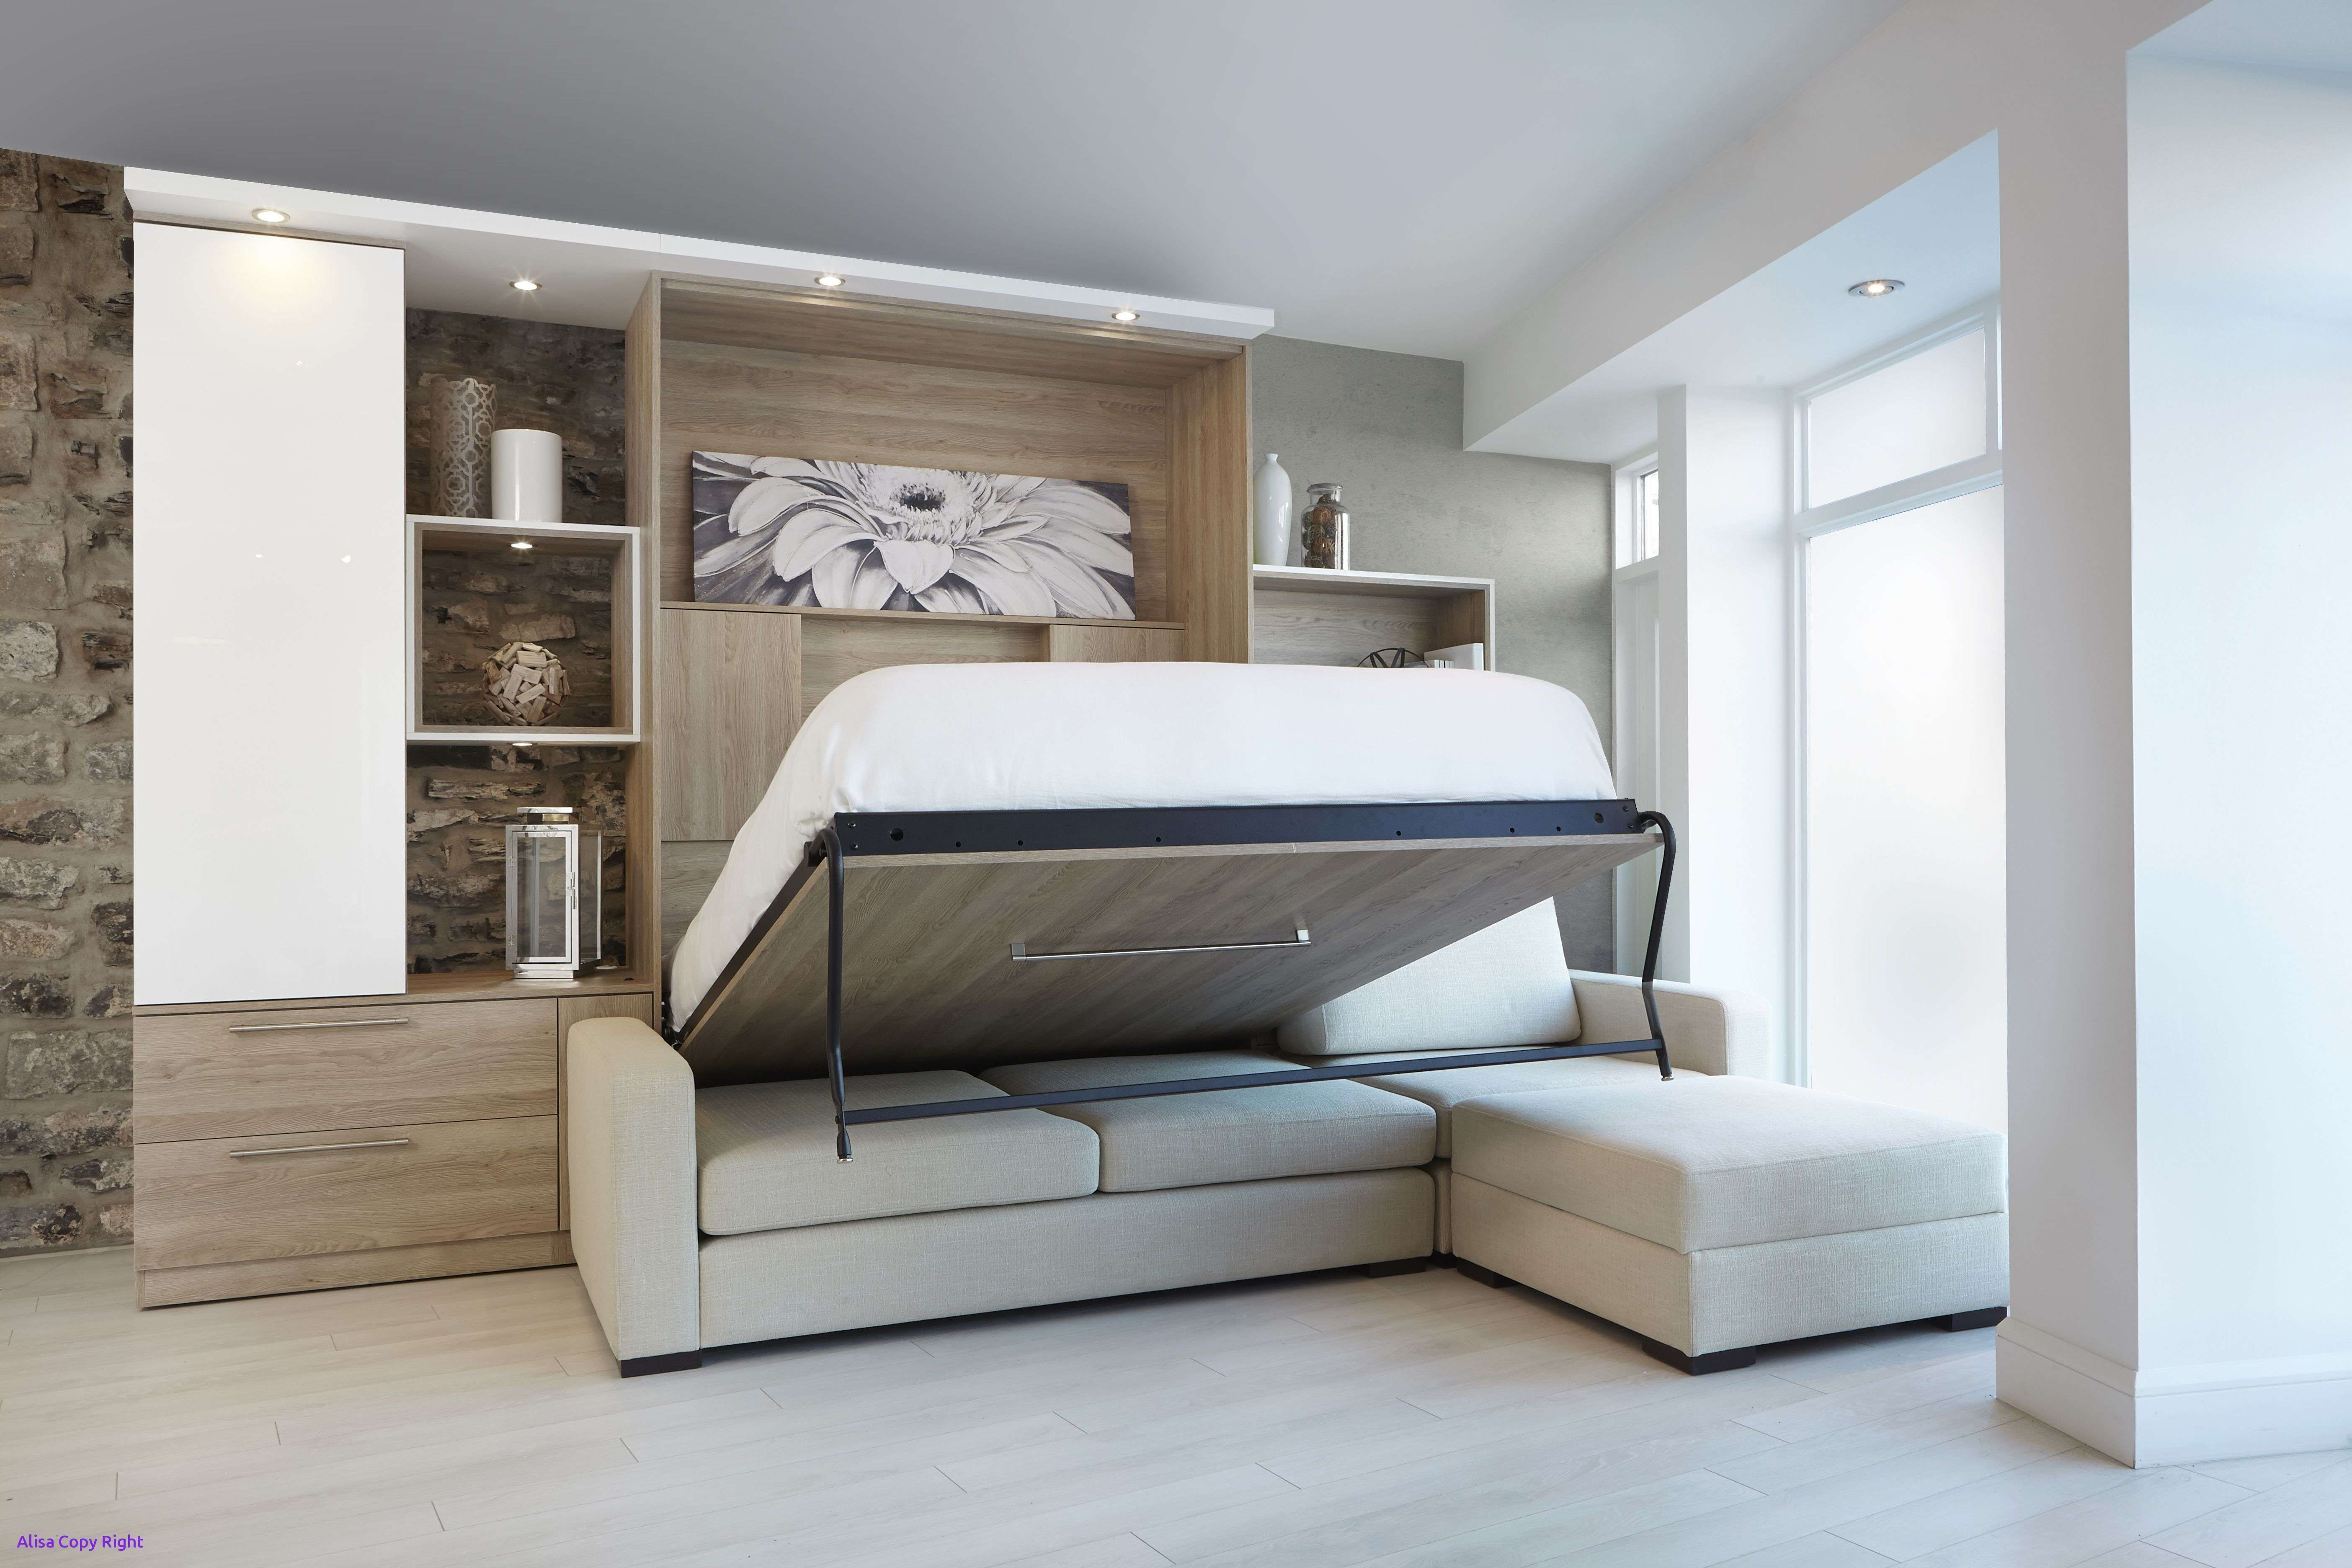 Murphy Bed Over sofa Combo homedecoration